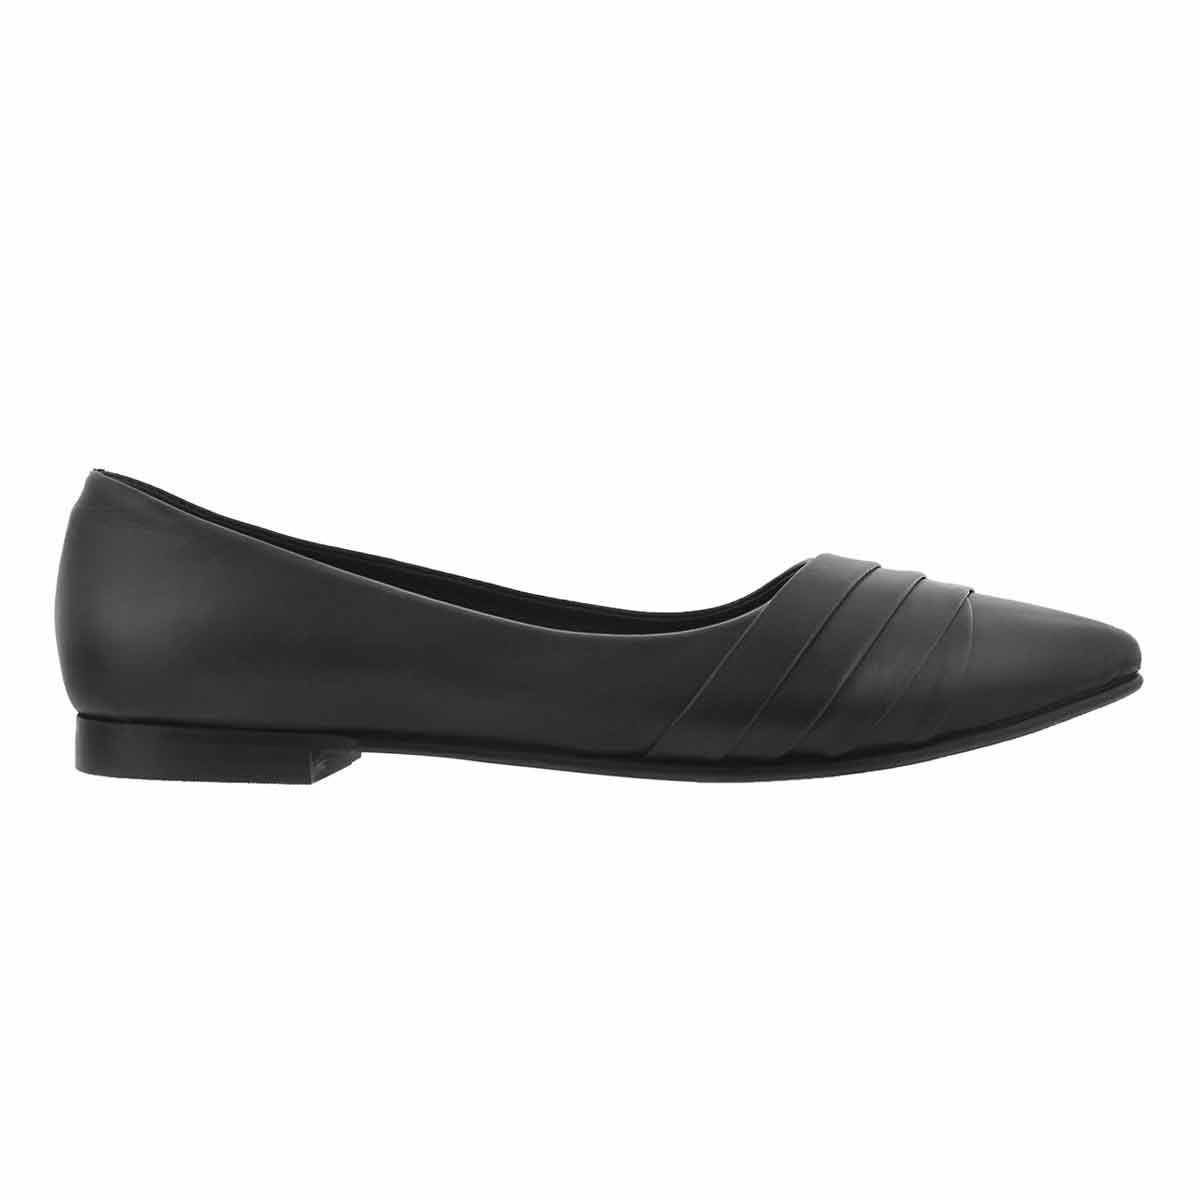 Lds Fiana black dress flat